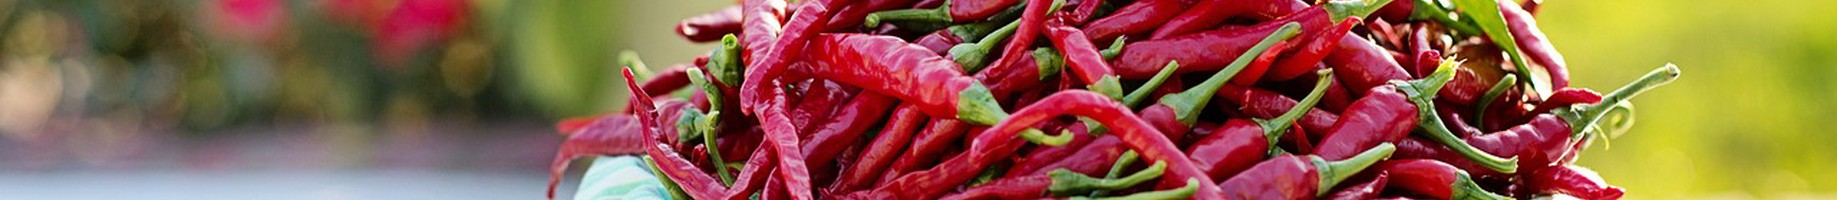 cayenne-peppers-2779828_1280